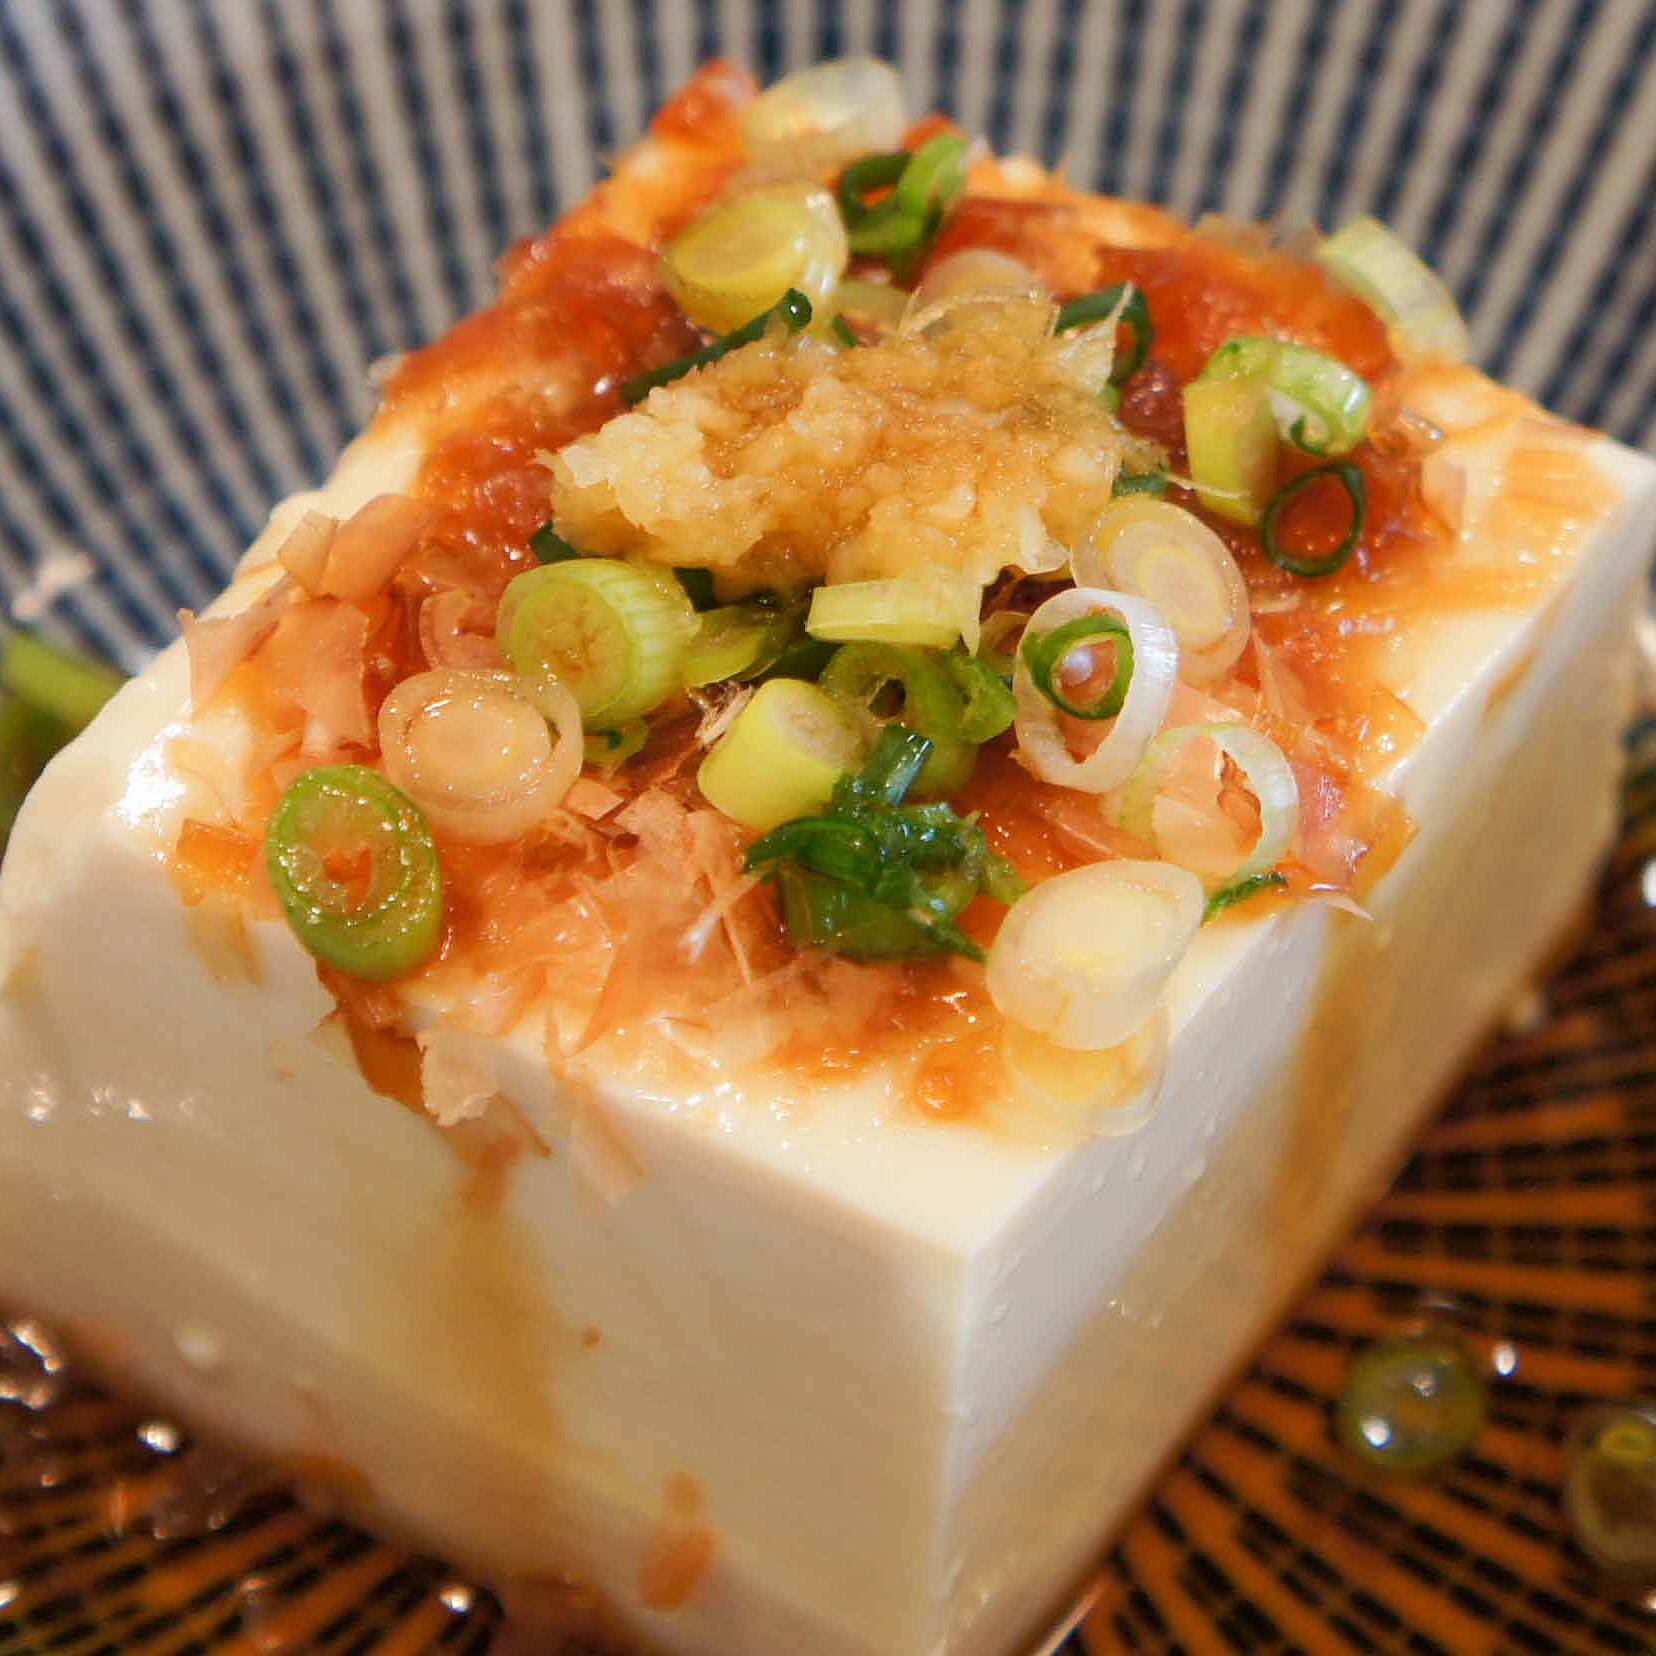 Japanese Chilled Tofu Hiyayakko 冷奴